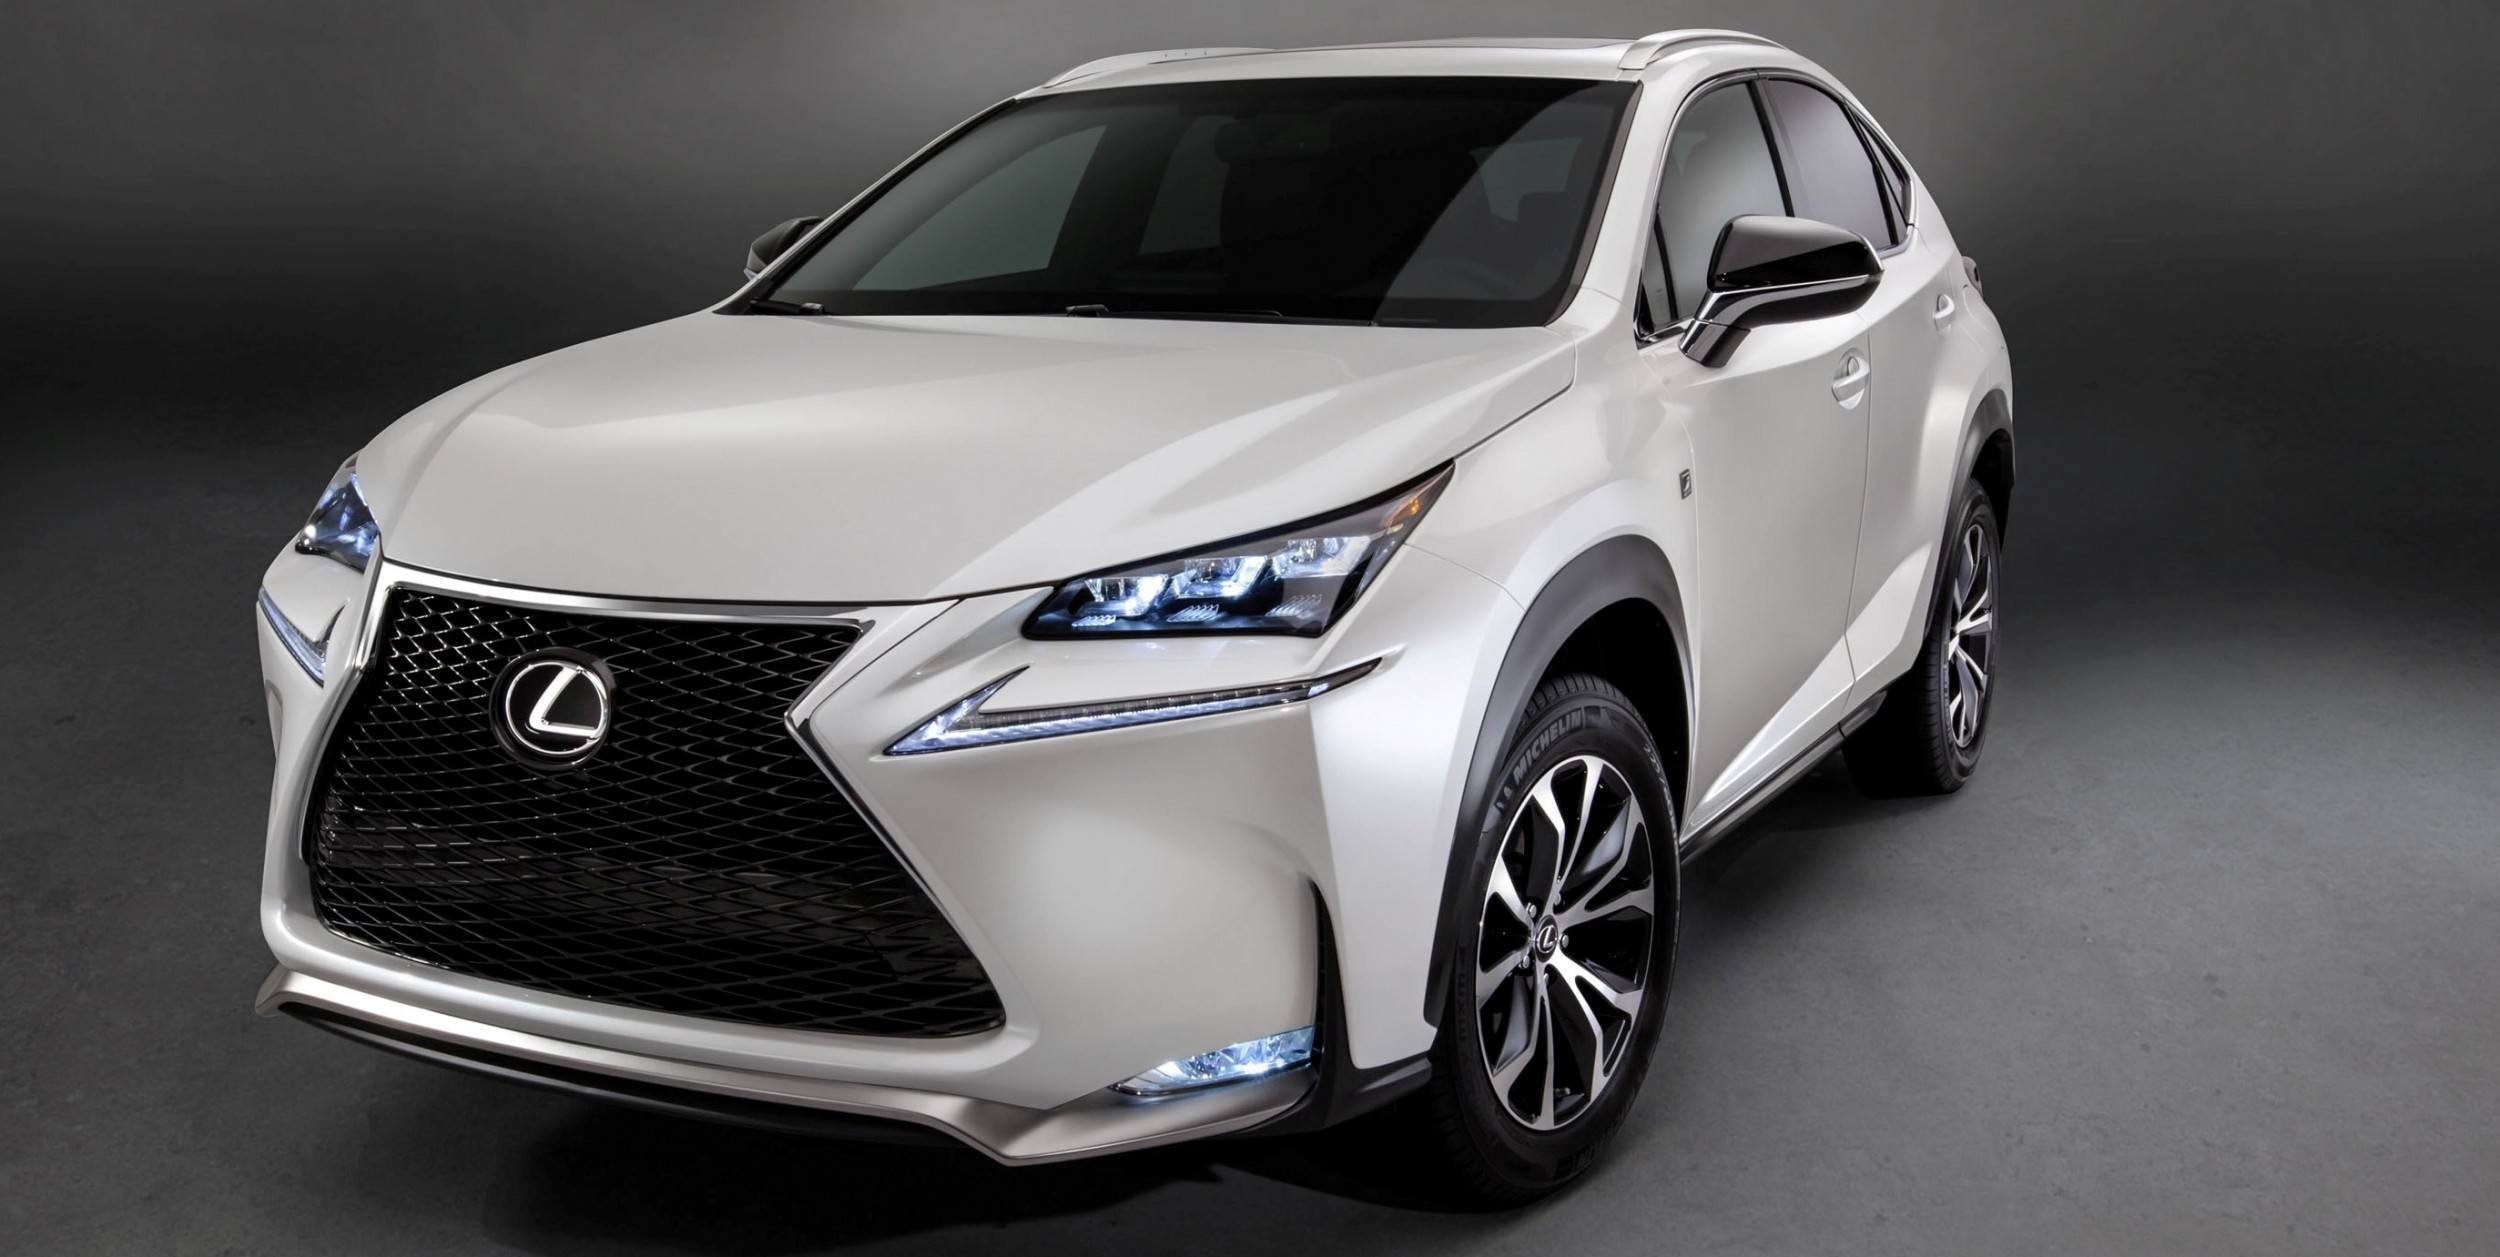 2015 Lexus NX300h And NX200t F Sport Revealed